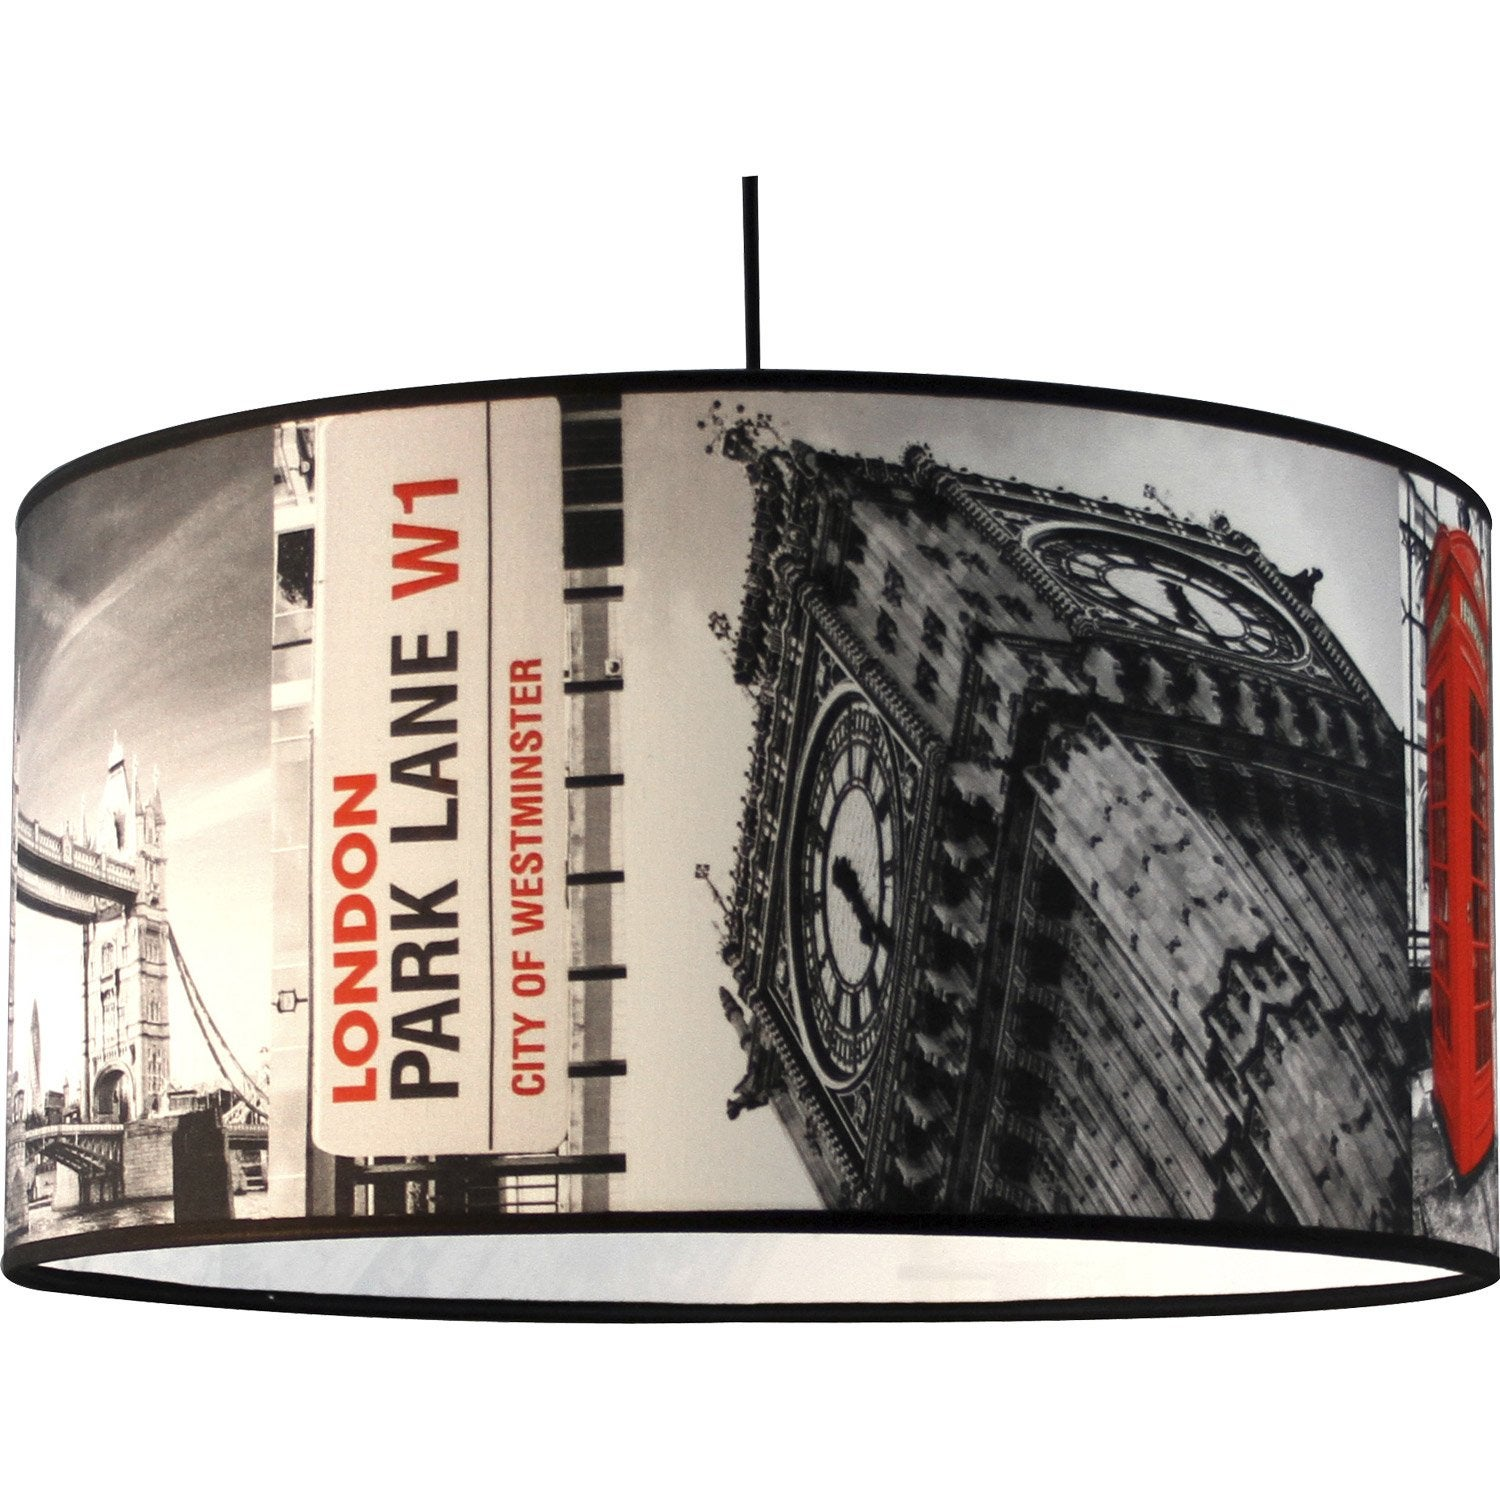 Suspension e27 city londres big ben tissus multicolore 1 x 60 w metropolight - Boutique londres pas cher ...